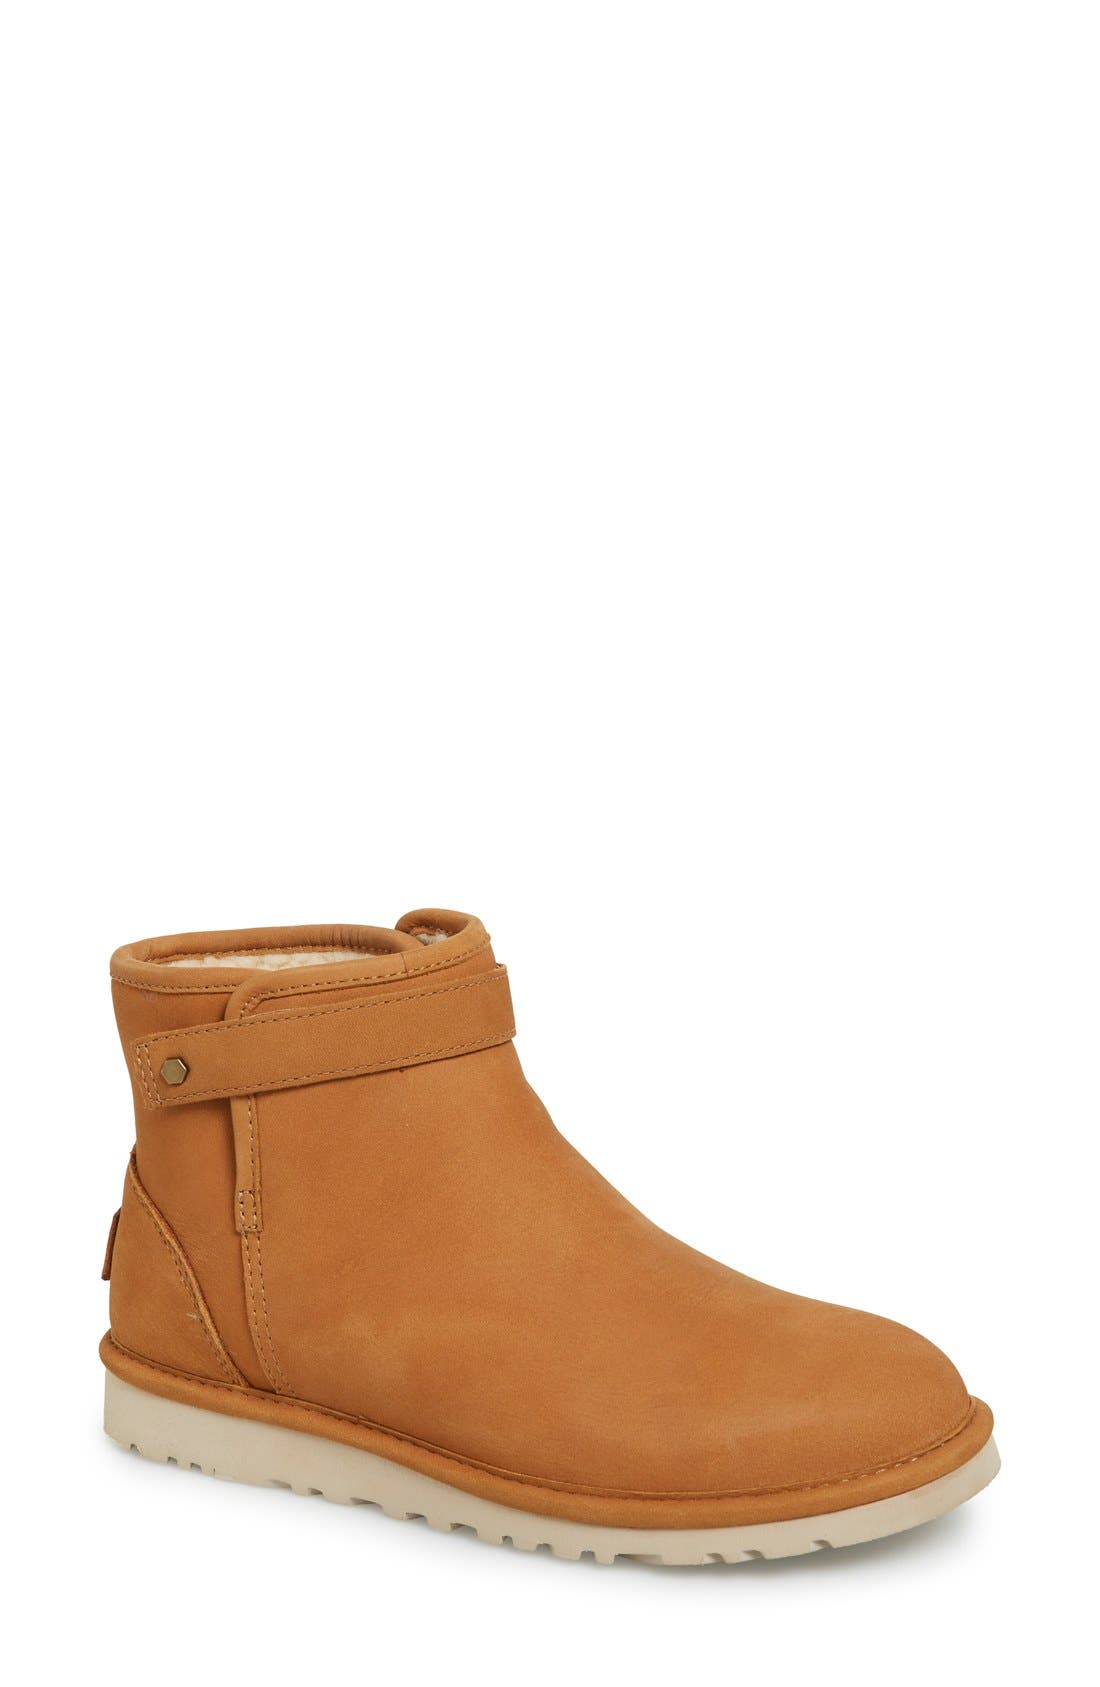 Main Image - UGG® 'Rella' Leather Ankle Boot (Women)